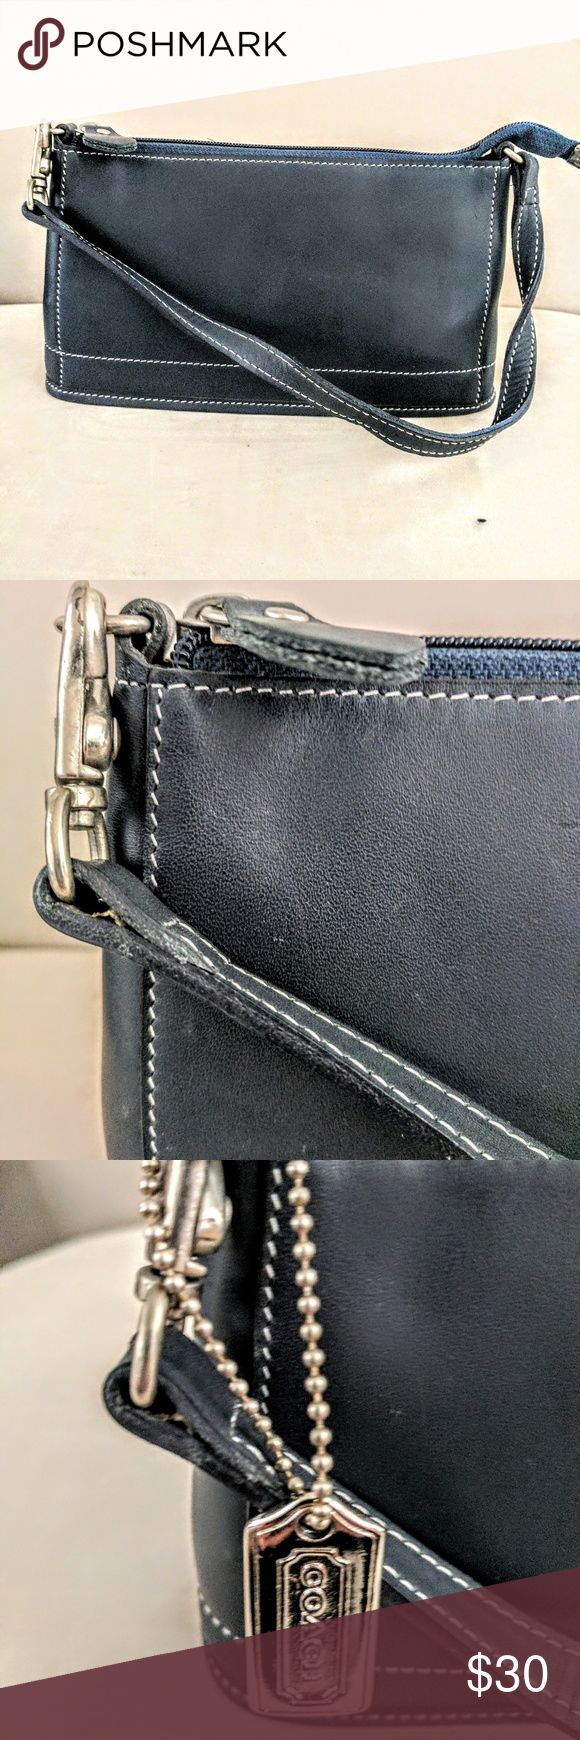 Vintage new Coach mini Navy leather mini pochette bag Coach Leatherware from the 90's. Got it as a gift and never took it out of the box. Great basic! Coach Bags Mini Bags